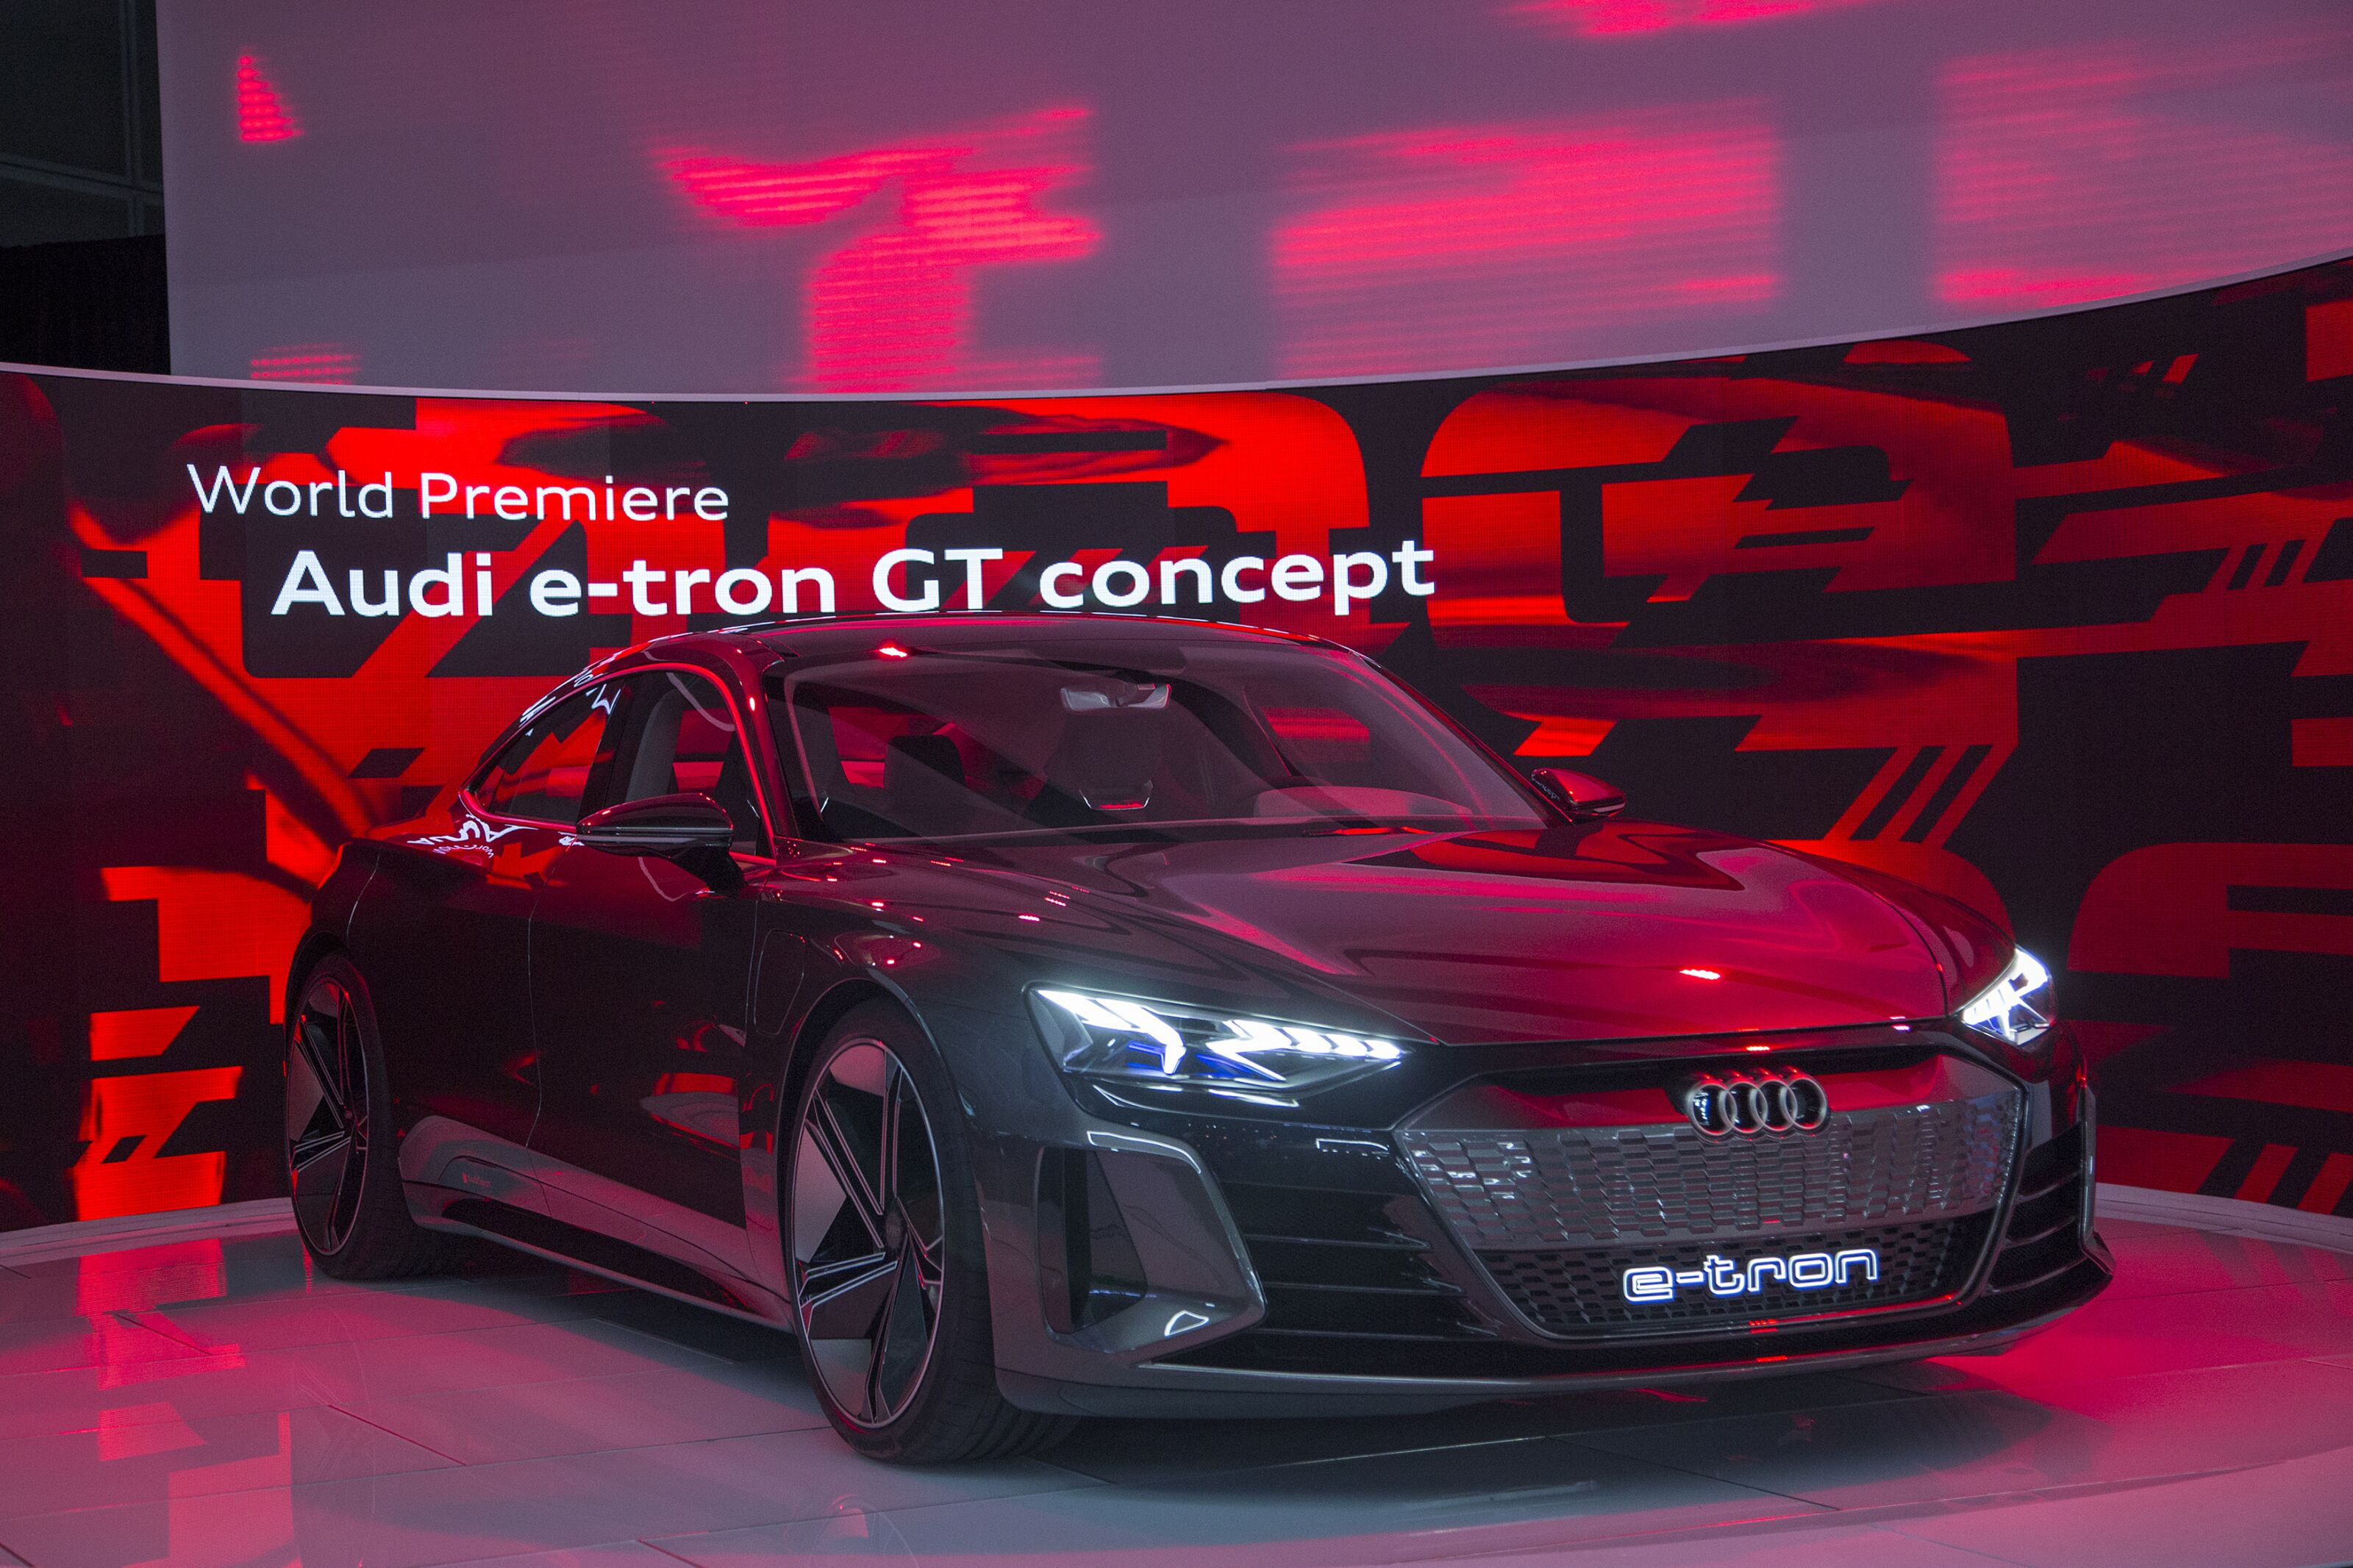 Audi e-tron GT Coming in 2020